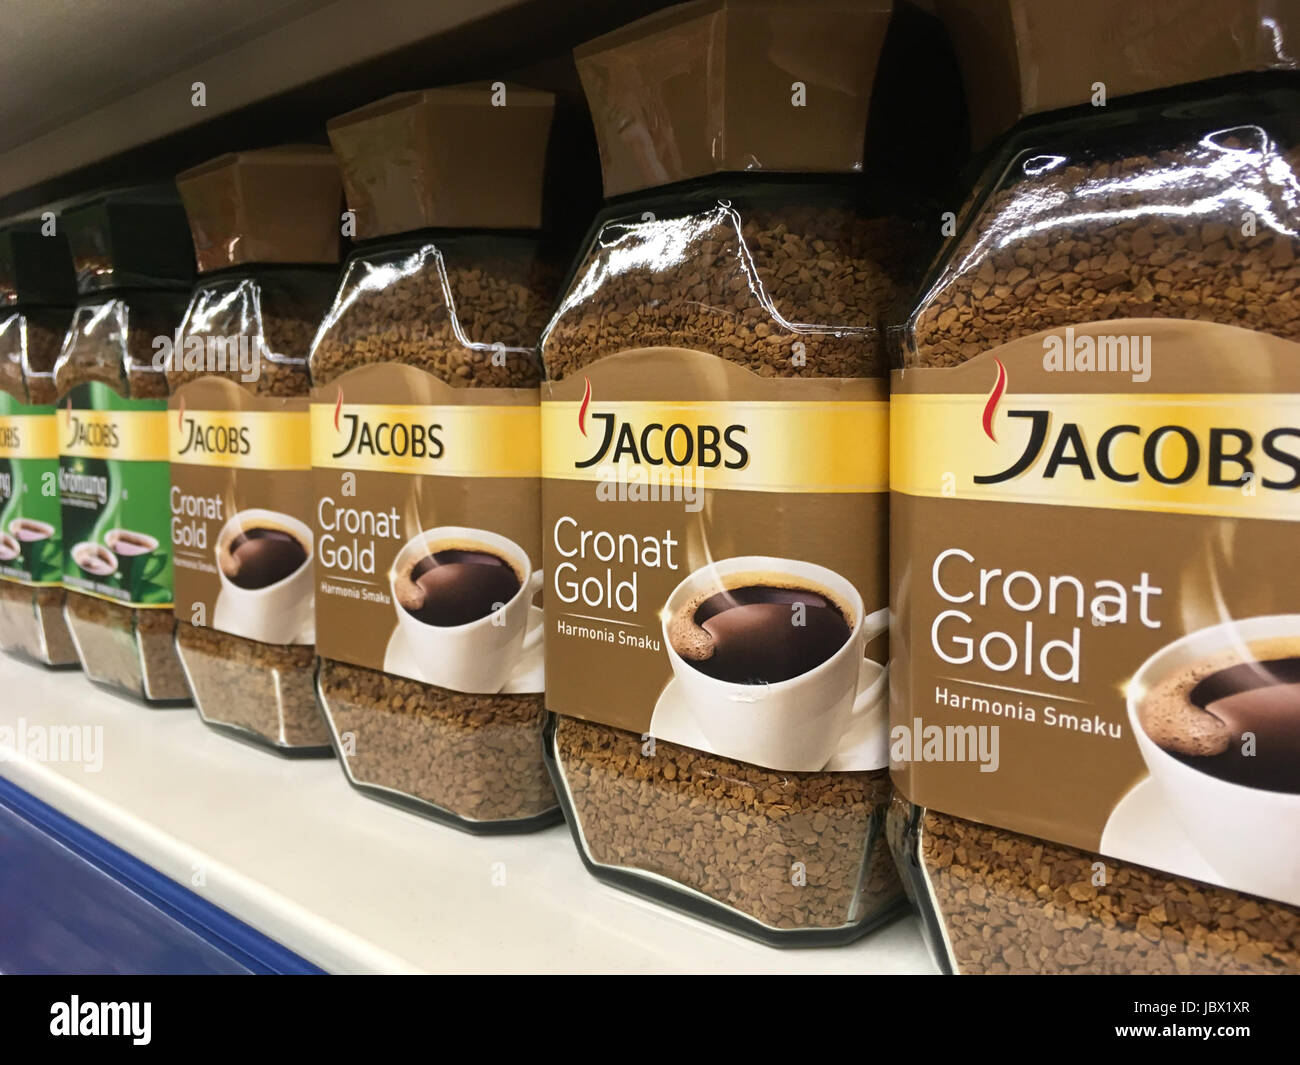 Nowy Sacz, Poland - April 26, 2017:  Various types of Jacobs coffee for sale in E.leclerc Supermarket. Jacobs is - Stock Image